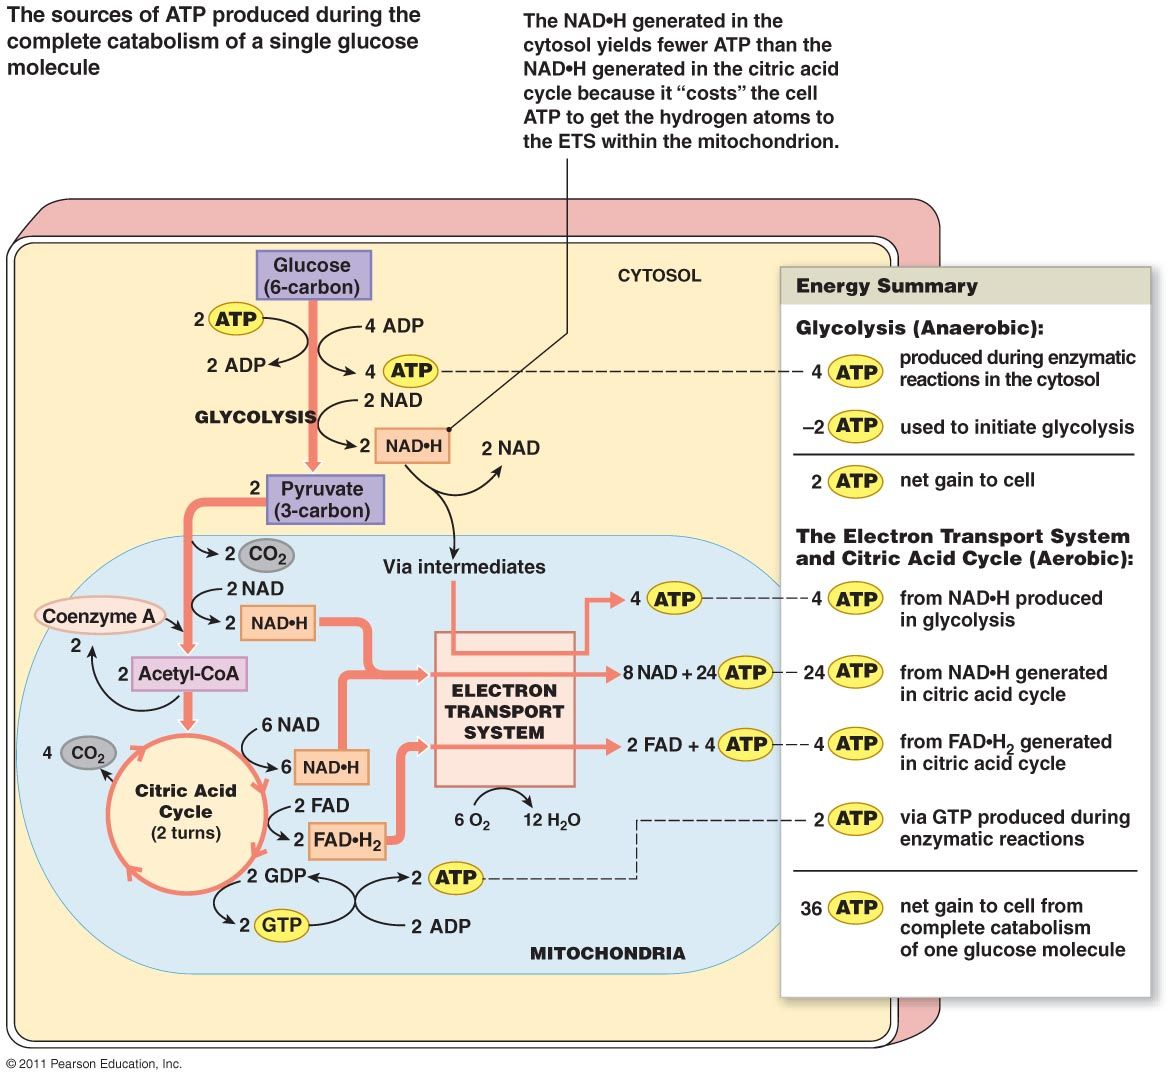 small resolution of glucose metabolism diagram glucose metabolism diagram find this pin and more on metabolic pathways by paul tags electron transport chain